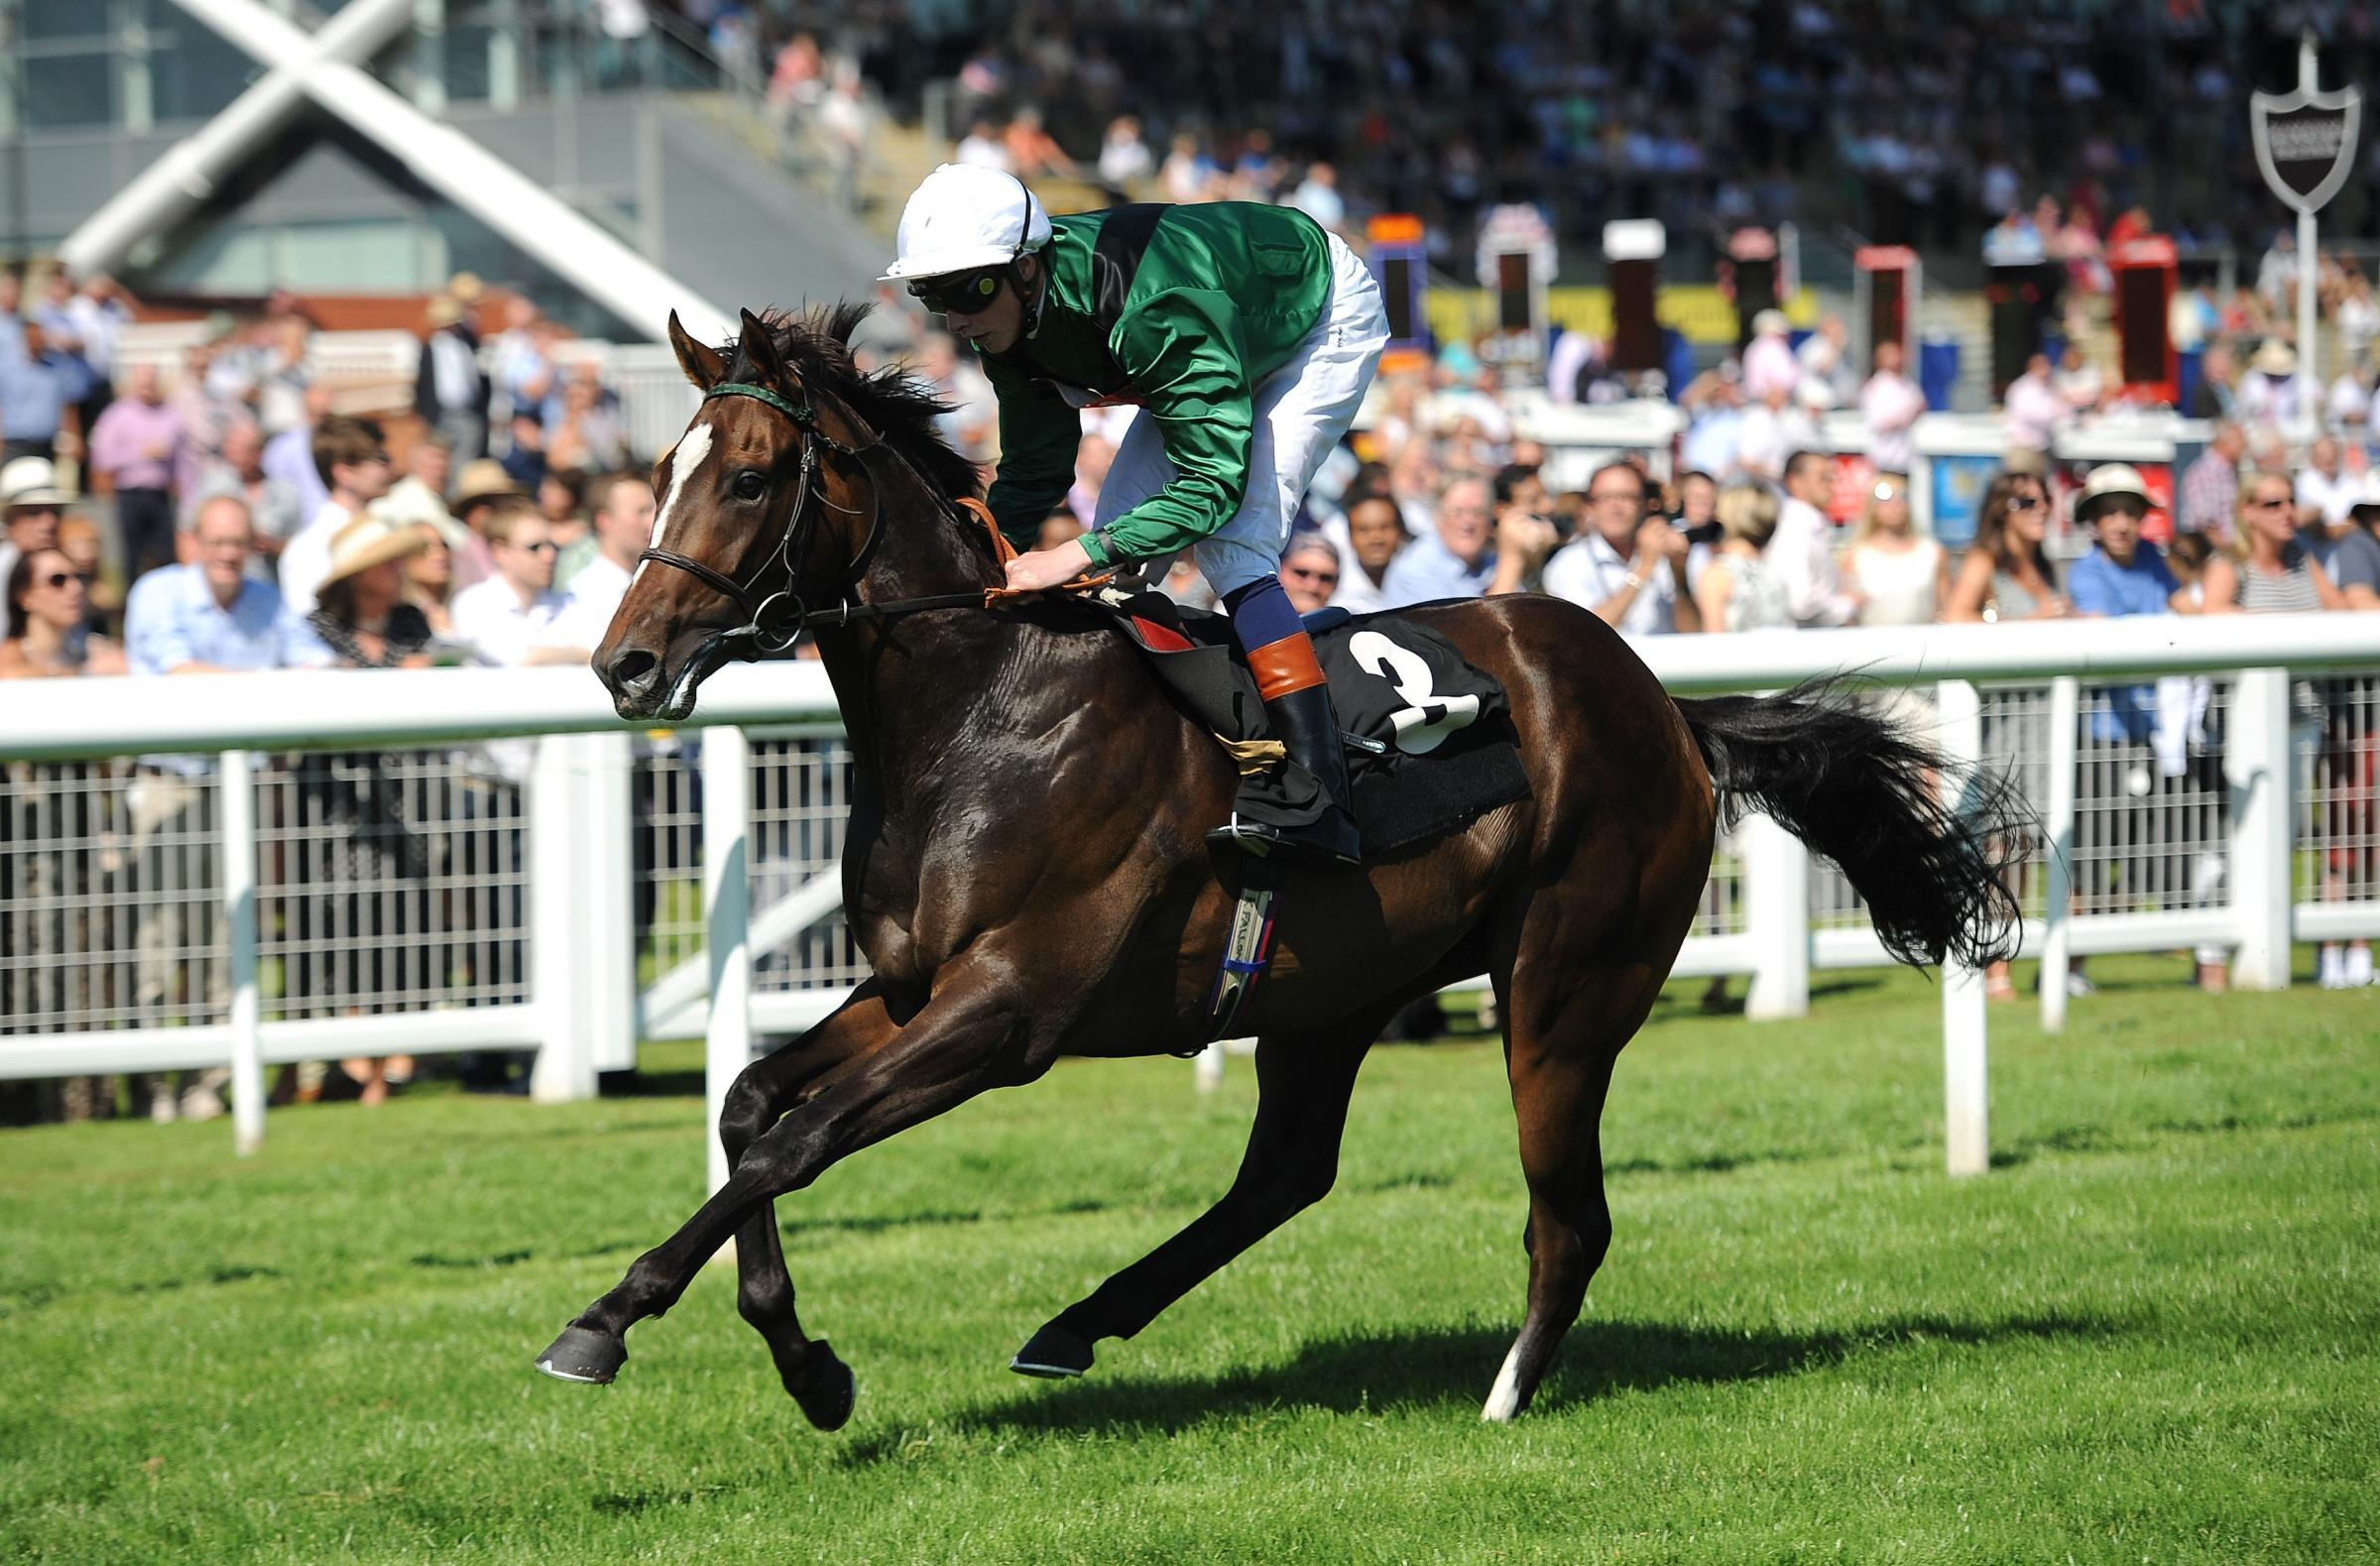 GOOD GROUND WANTED: Limato, pictured winning at Newbury, remains under consideration for the Duke Of York Clipper Logistics Stakes, the £165,000 sprint feature on the opening day of York Racecourse's new season on Wednesday. Picture: Andrew Ma